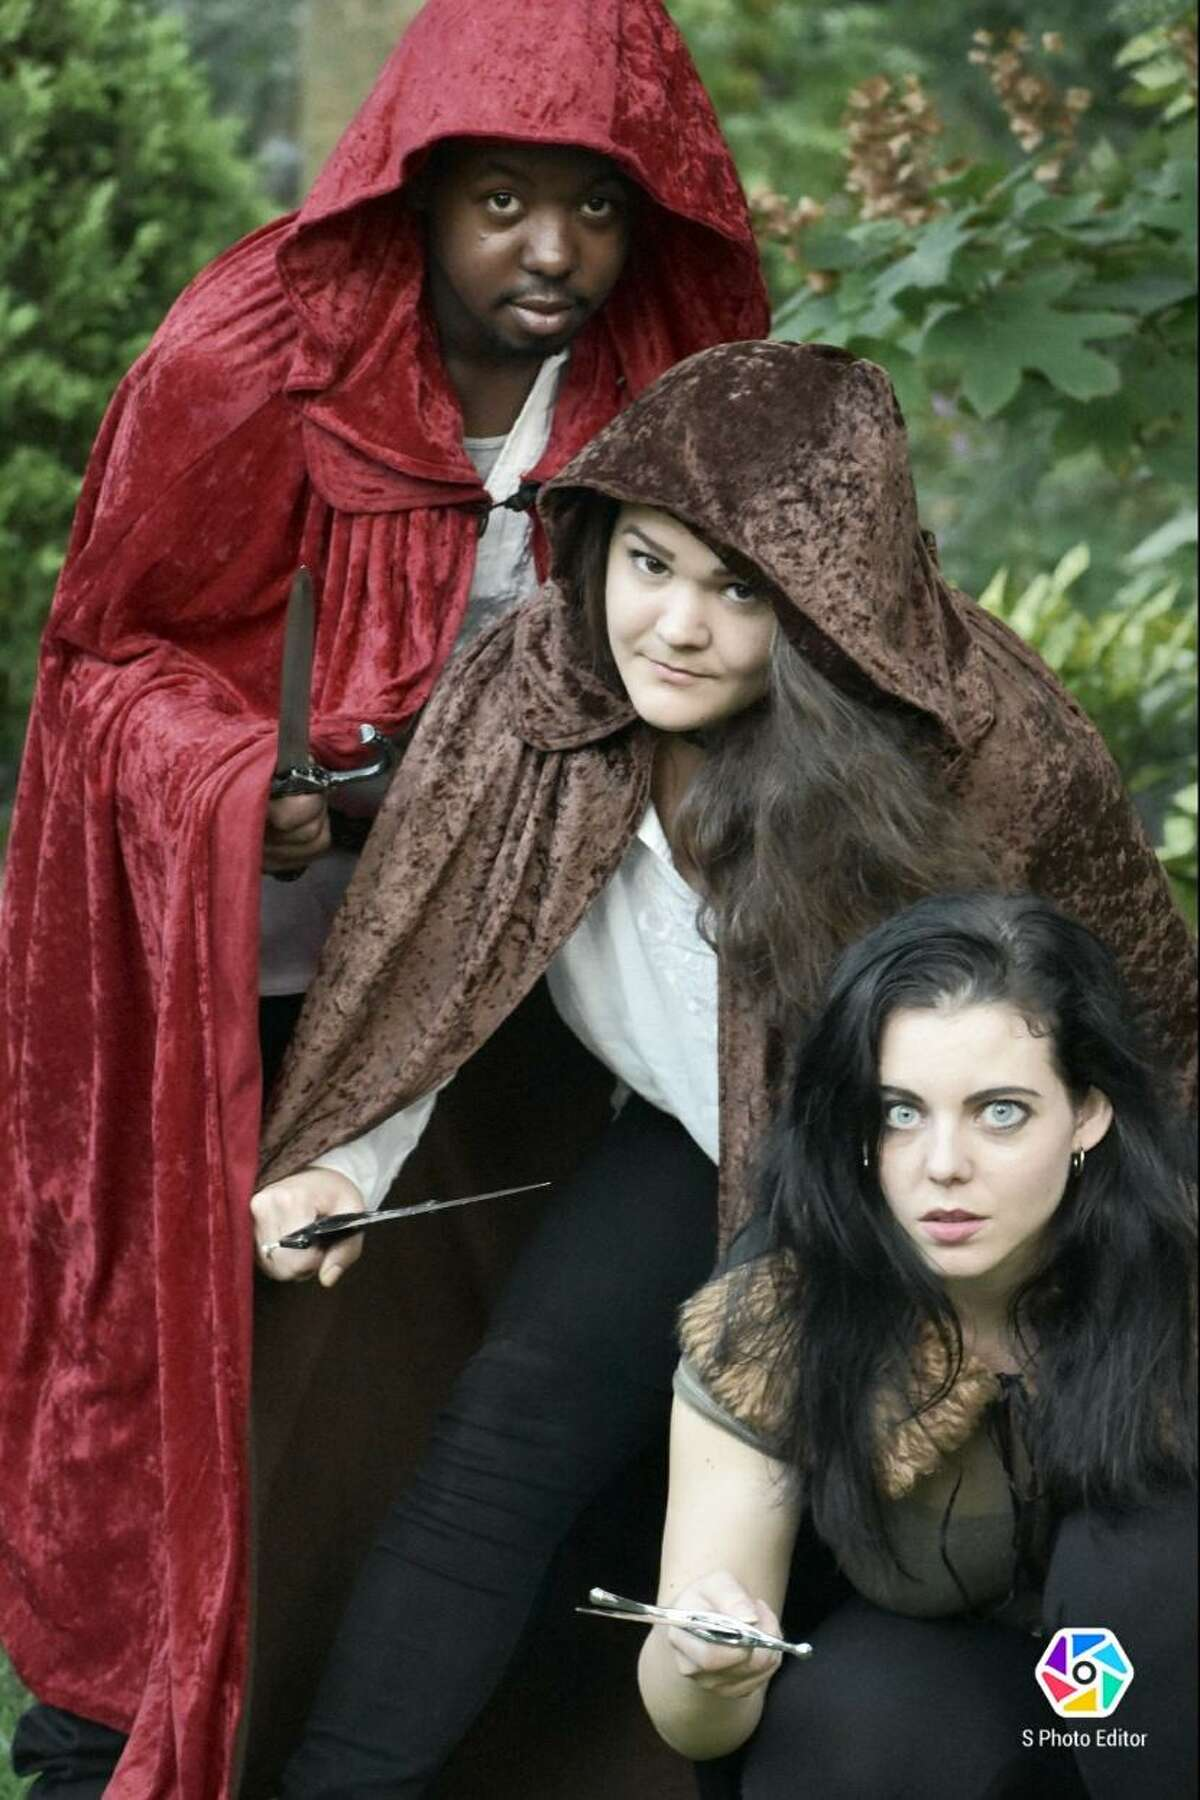 The witches of the Hudson Shakespeare Company production of